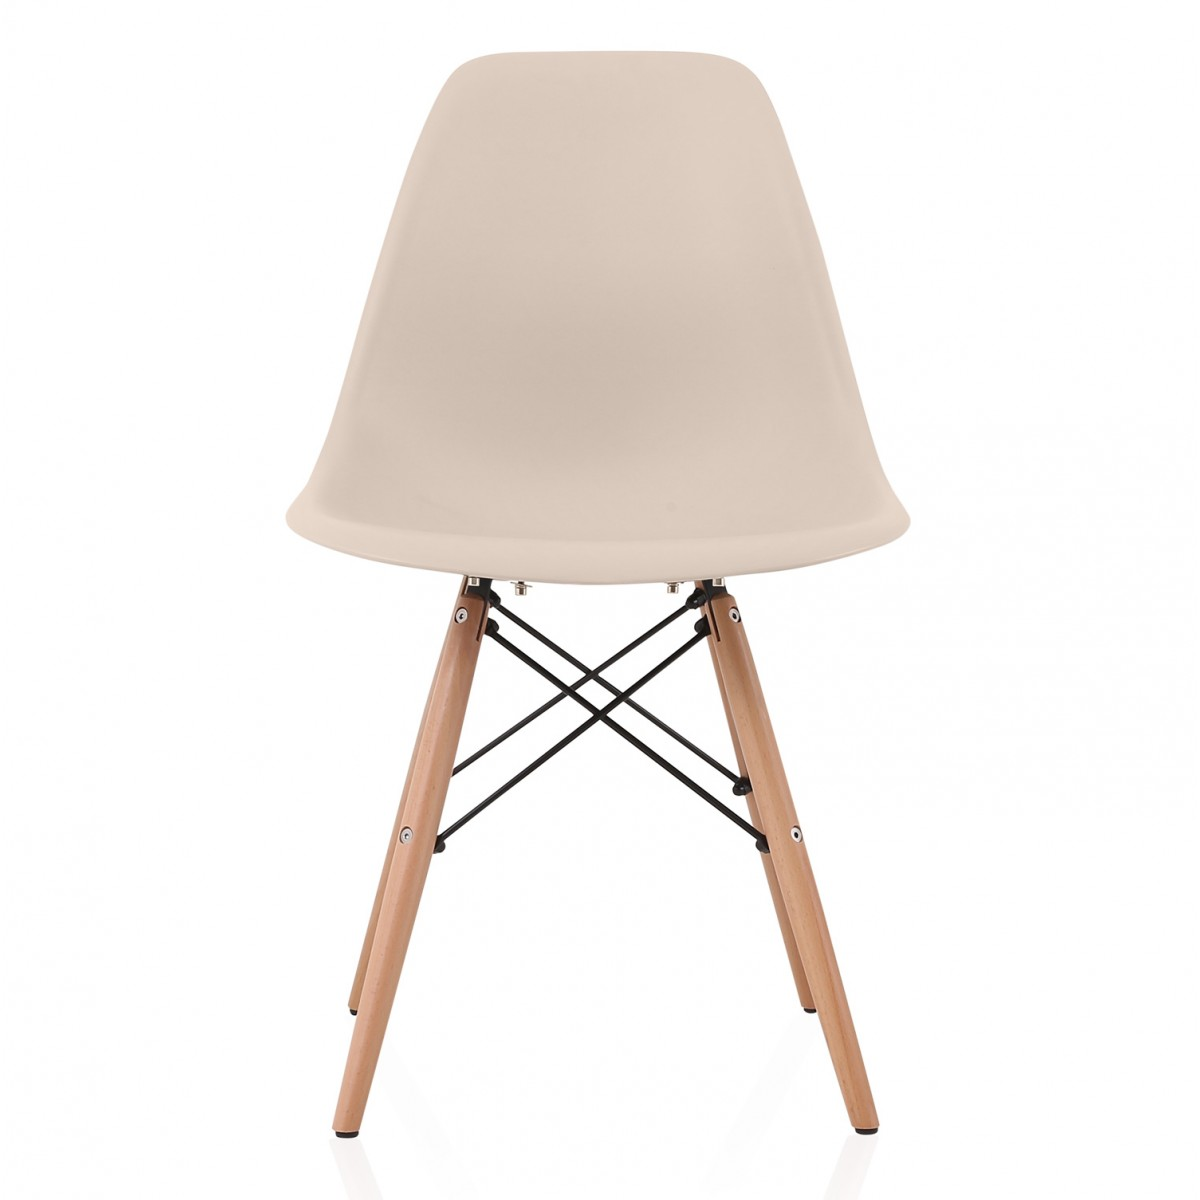 eiffel dining chair with beech legs room covers buttons nature series cream beige eames style dsw molded plastic